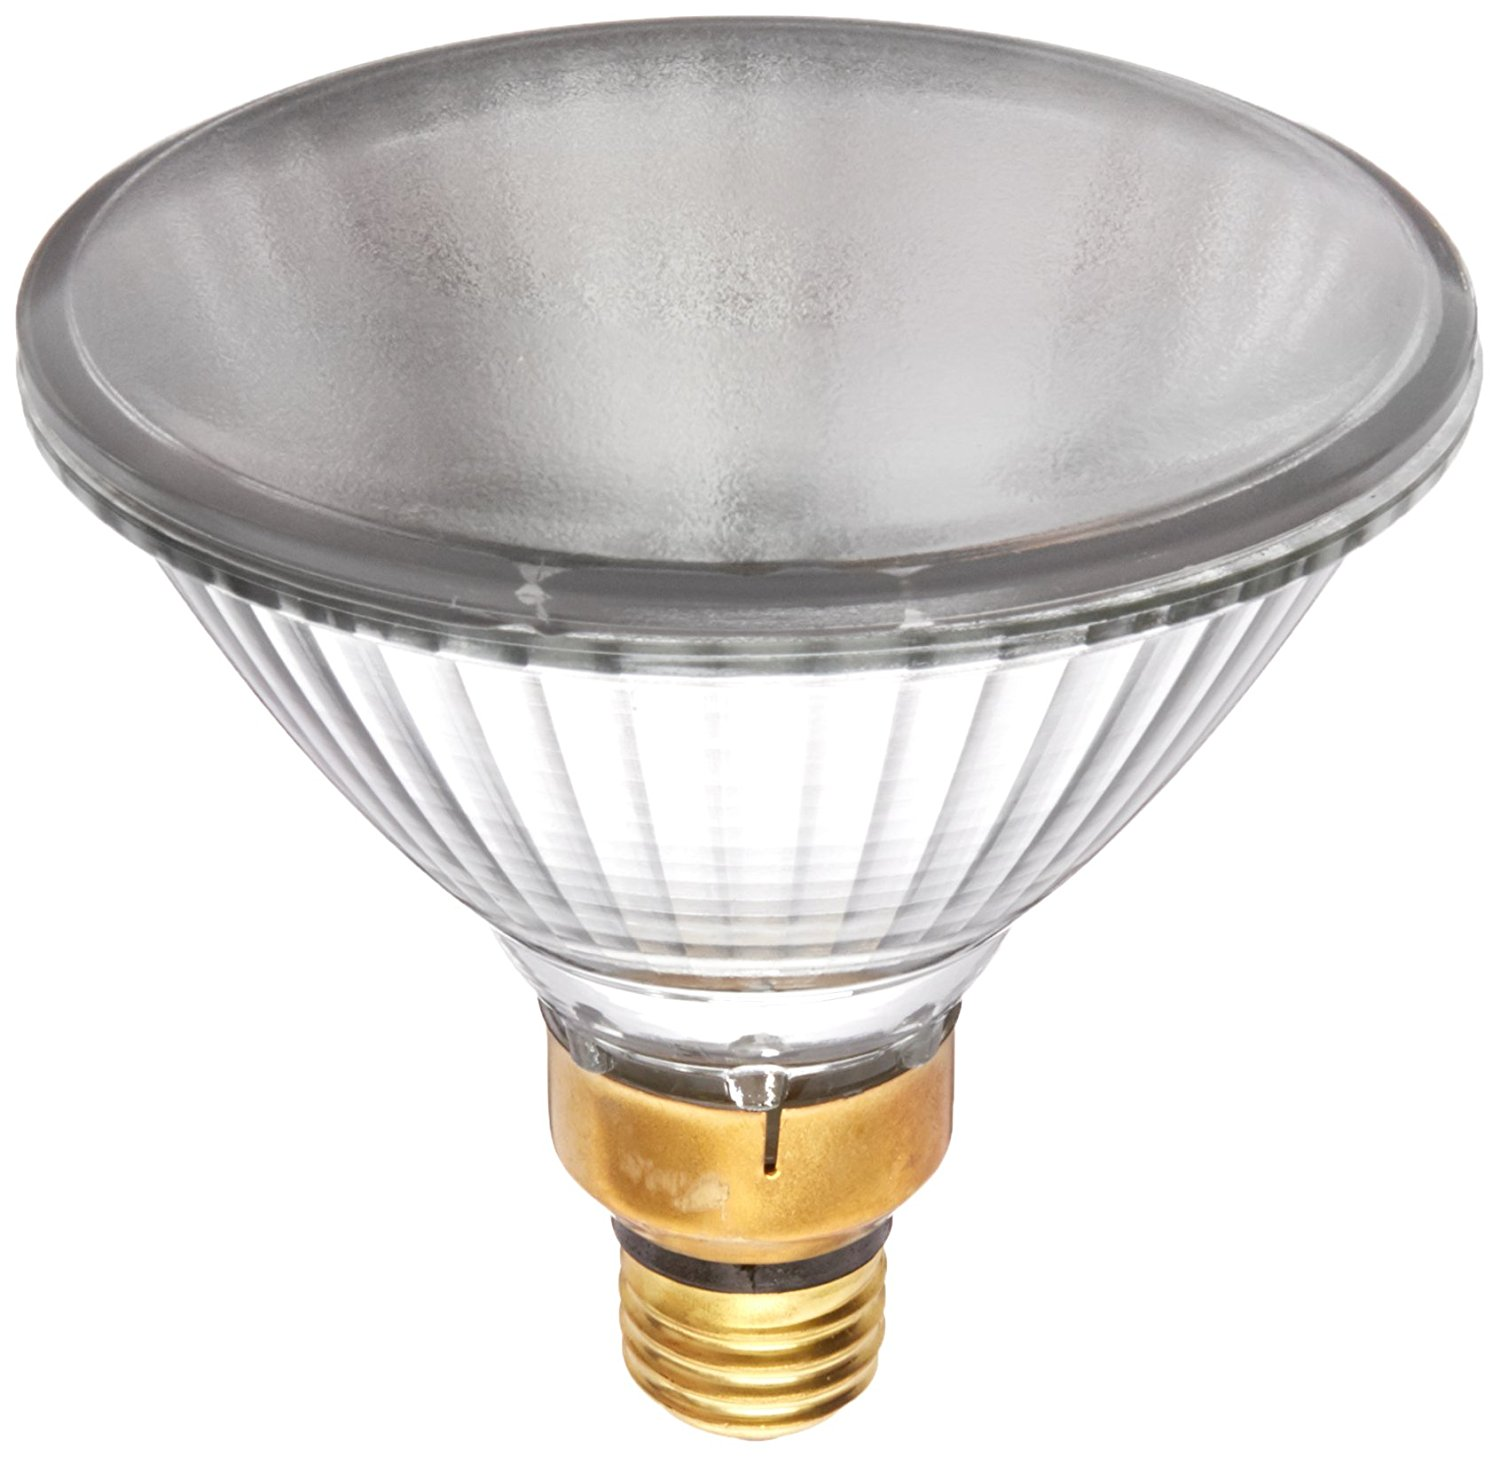 Halogen Heat Lamp 50W..., By Zoo Med Ship from US by